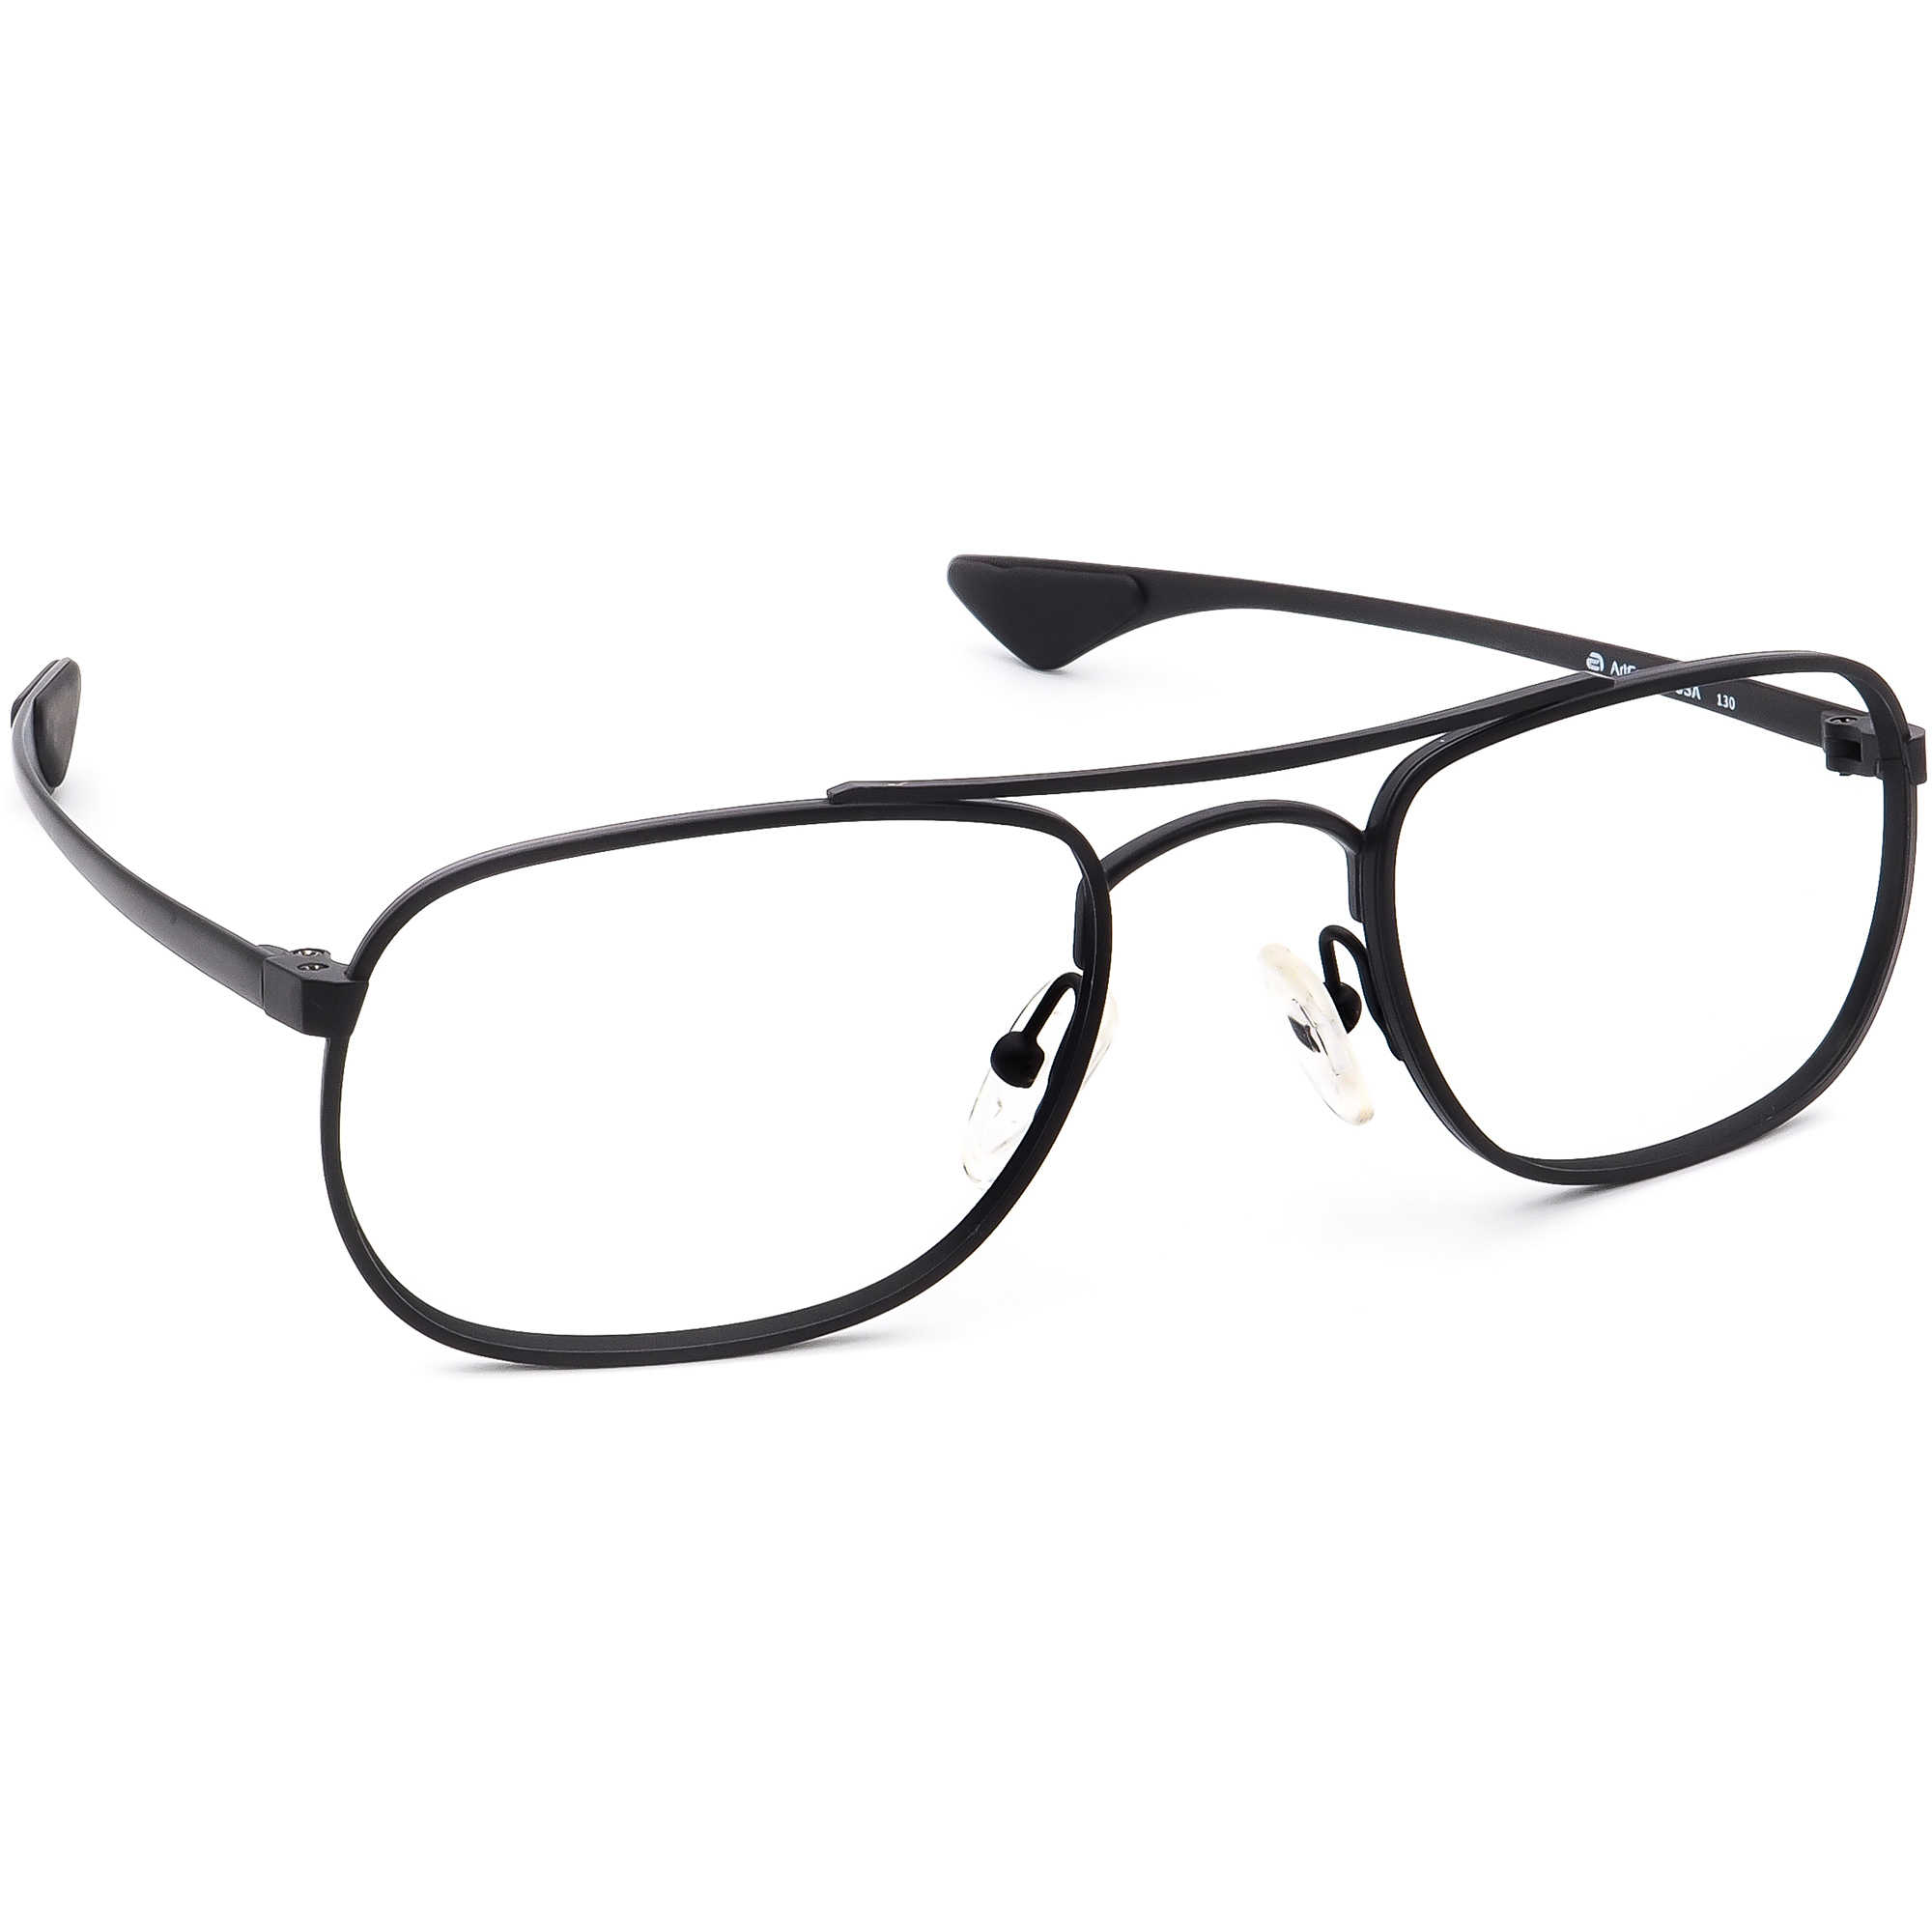 Artcraft USA Military Eyeglasses